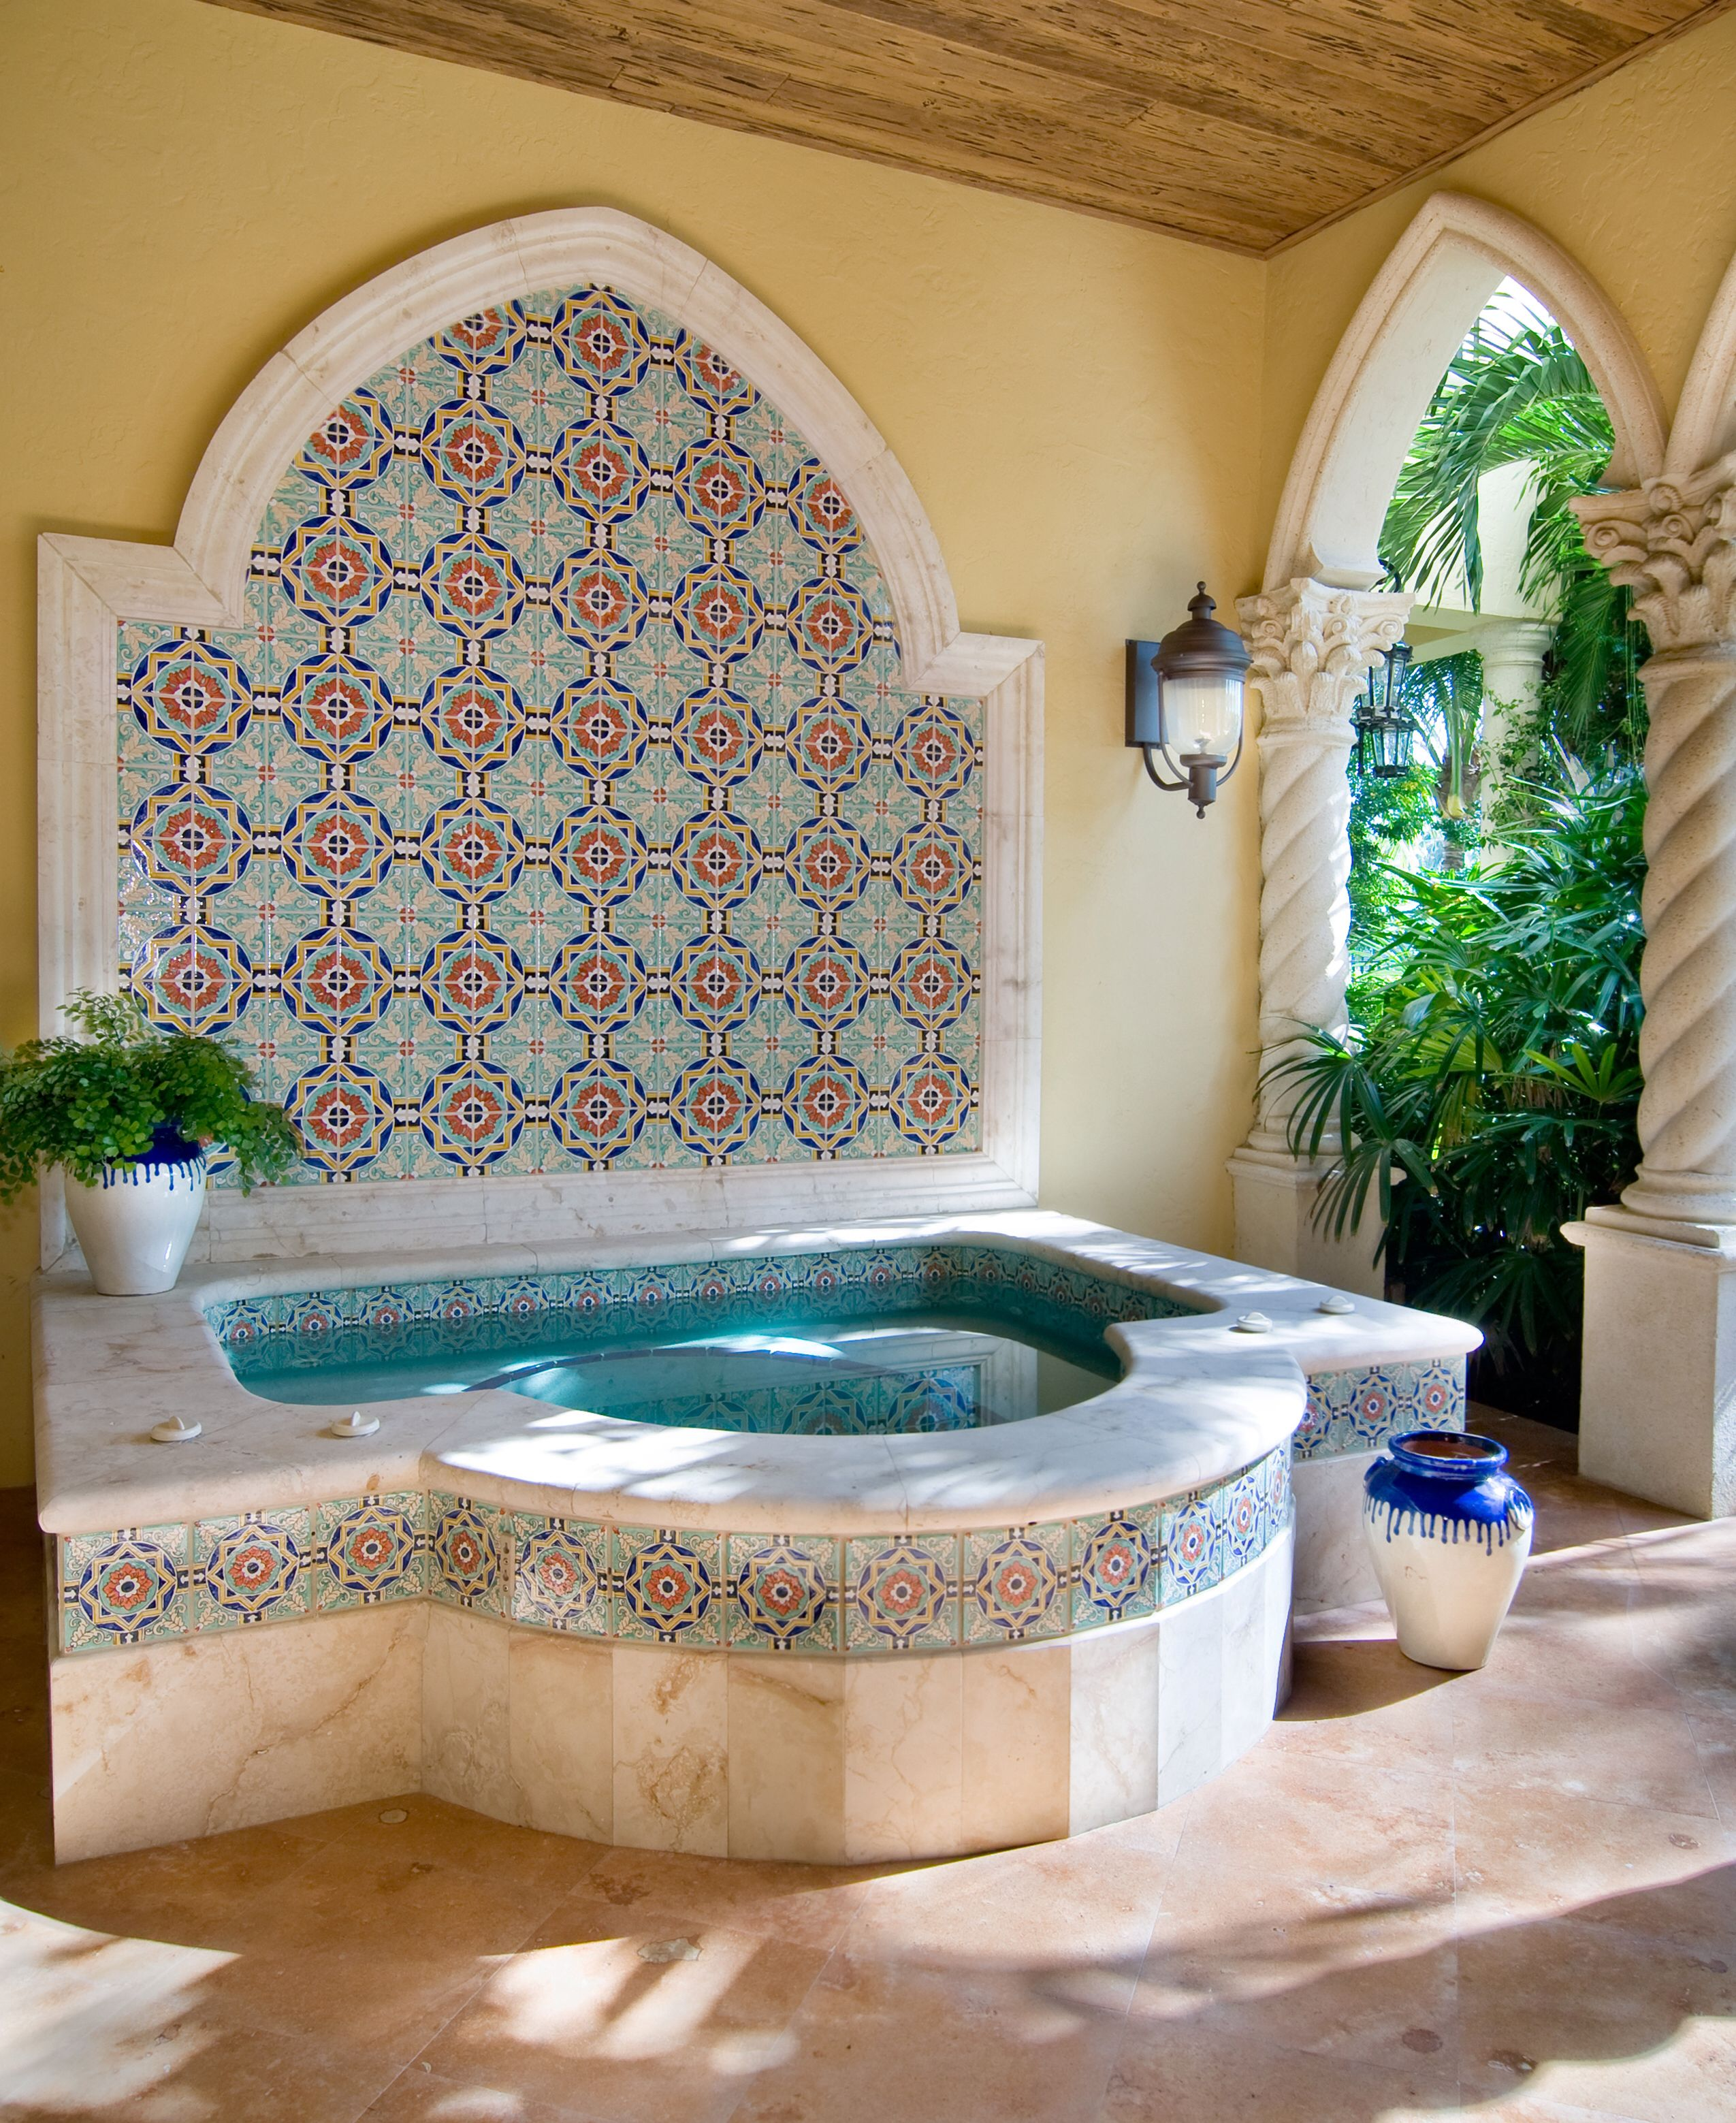 Spanish Decorative Wall Tiles So In Love With This Fountain Shaped Spa The Beautiful Hand